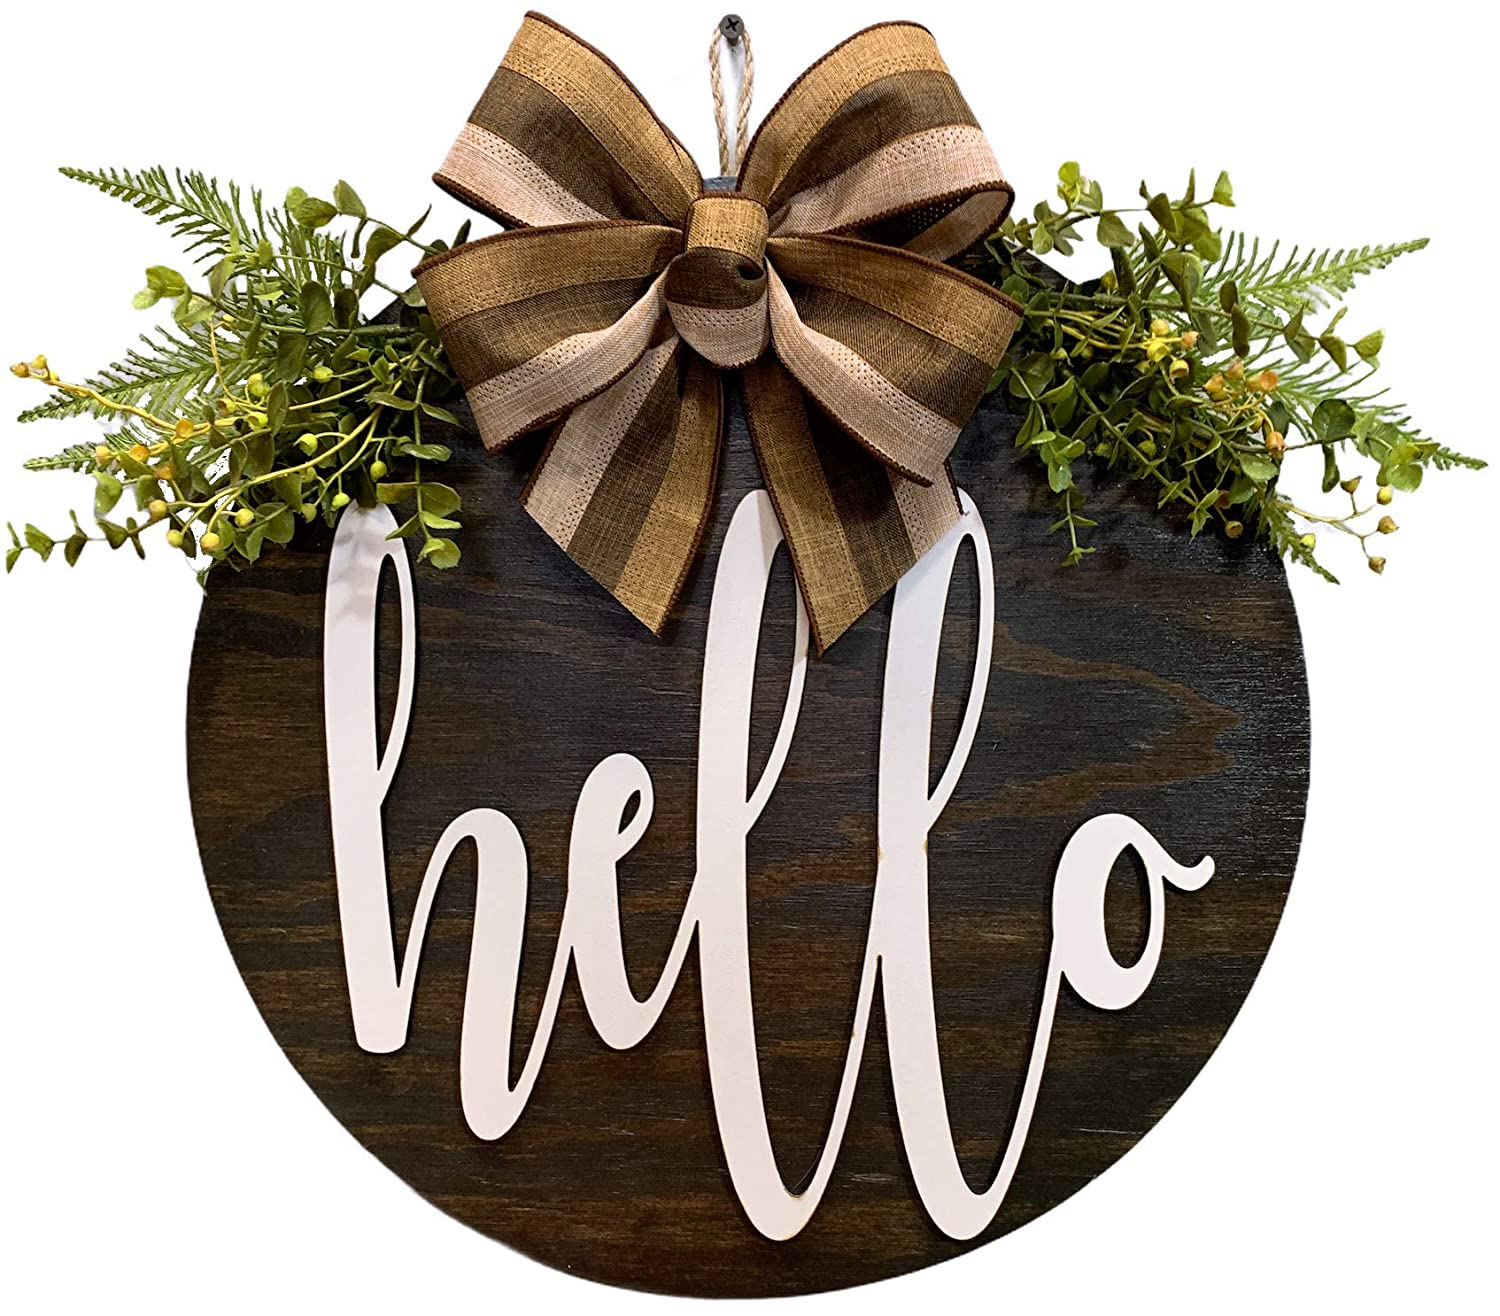 HELLO Wreath for Front Door Year Plaid with Round Los Angeles Mall Ribbon Minneapolis Mall Hanger